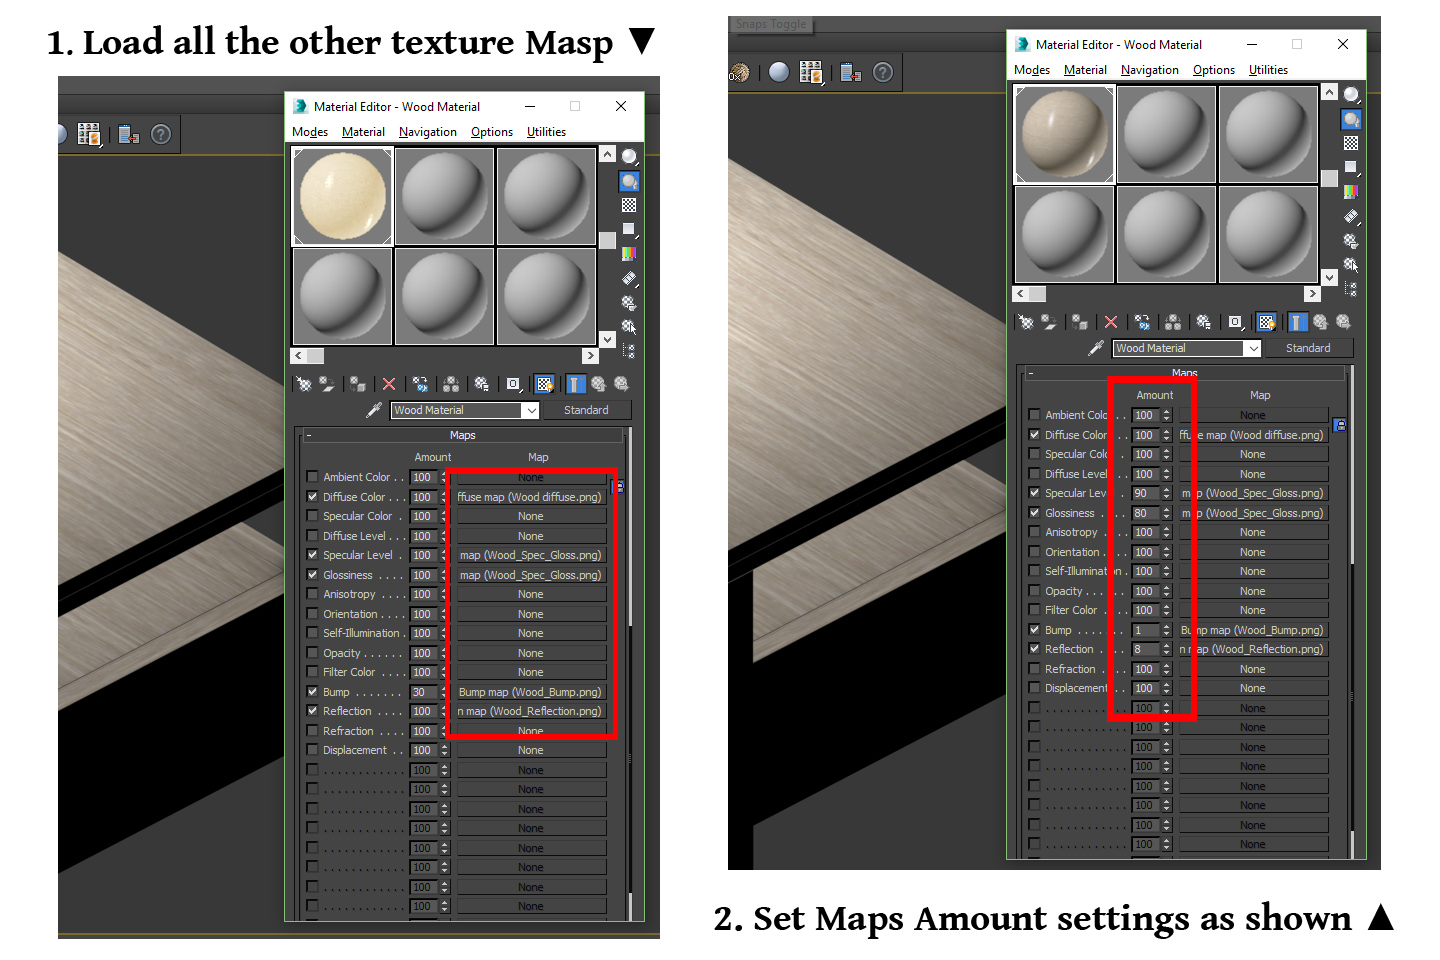 schema on how to set maps amount parameters, standard wood material